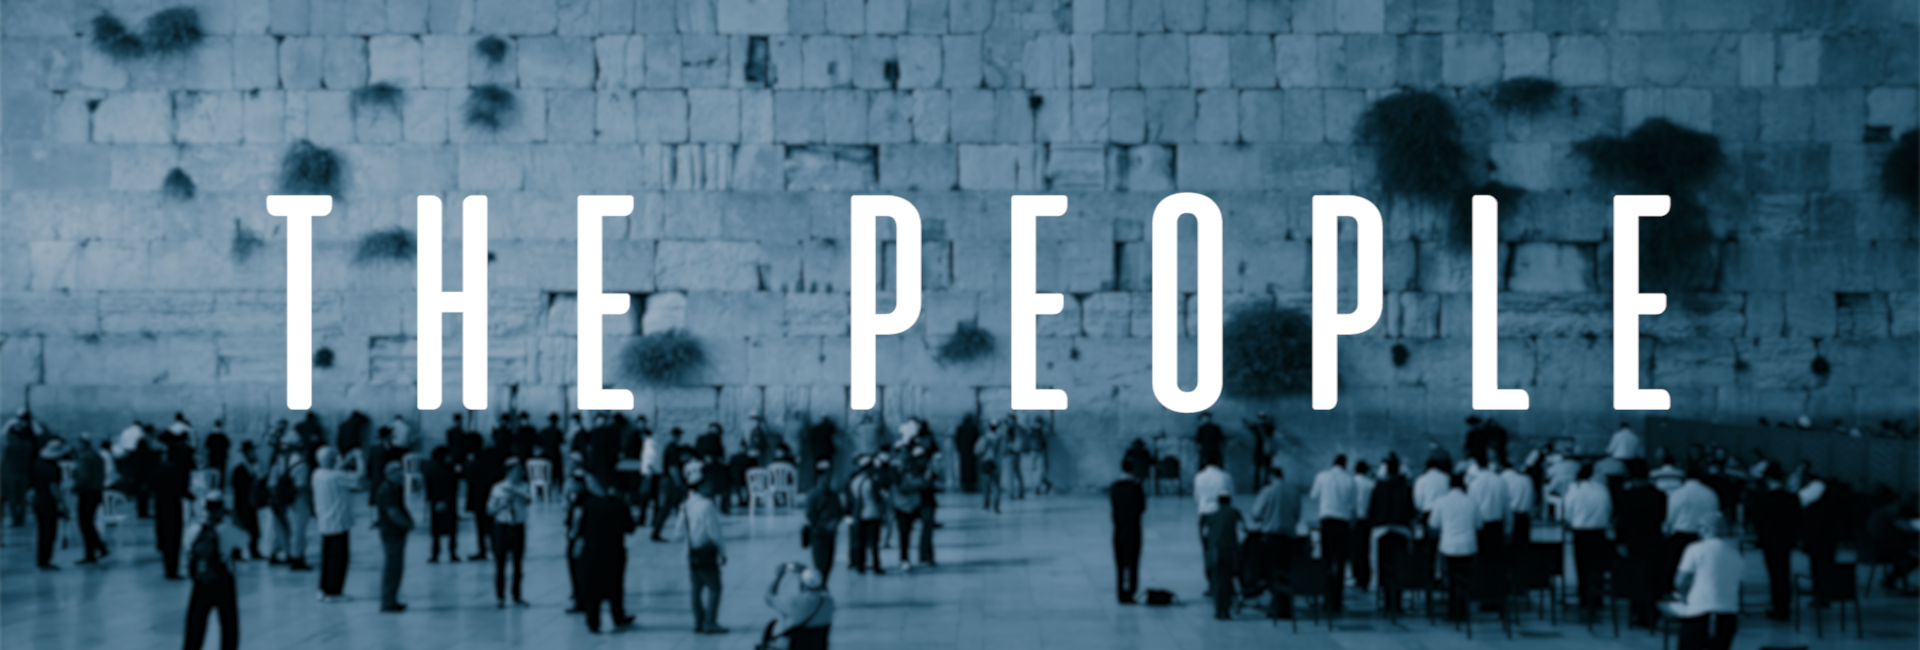 Israel First TV Programme   News, Interviews & Features From